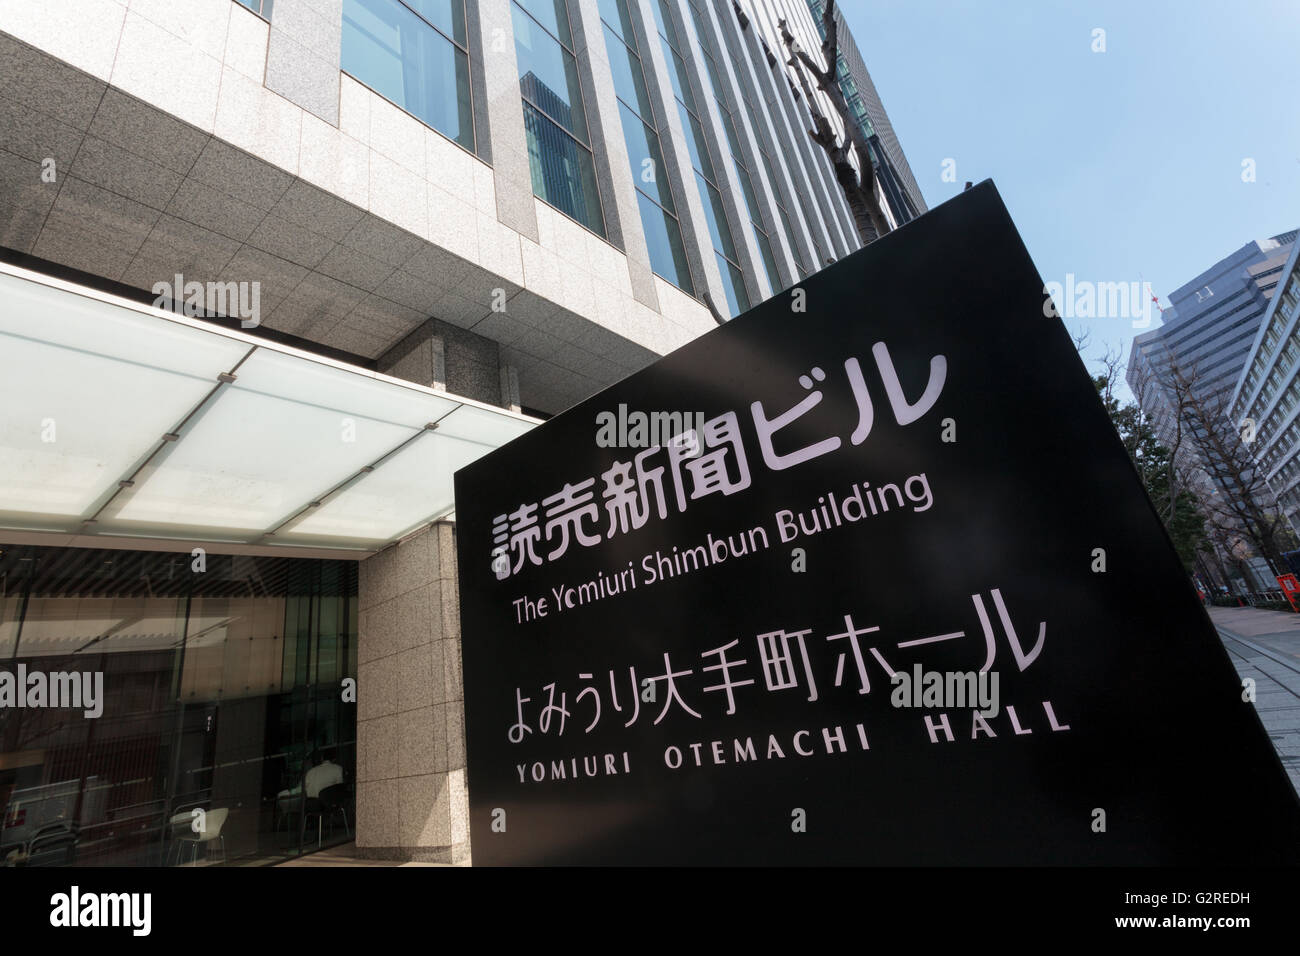 The Head Quarters building of the Yomiuri Newspaper group in Otemachi, Tokyo, Japan. Friday March 4th 2016 - Stock Image